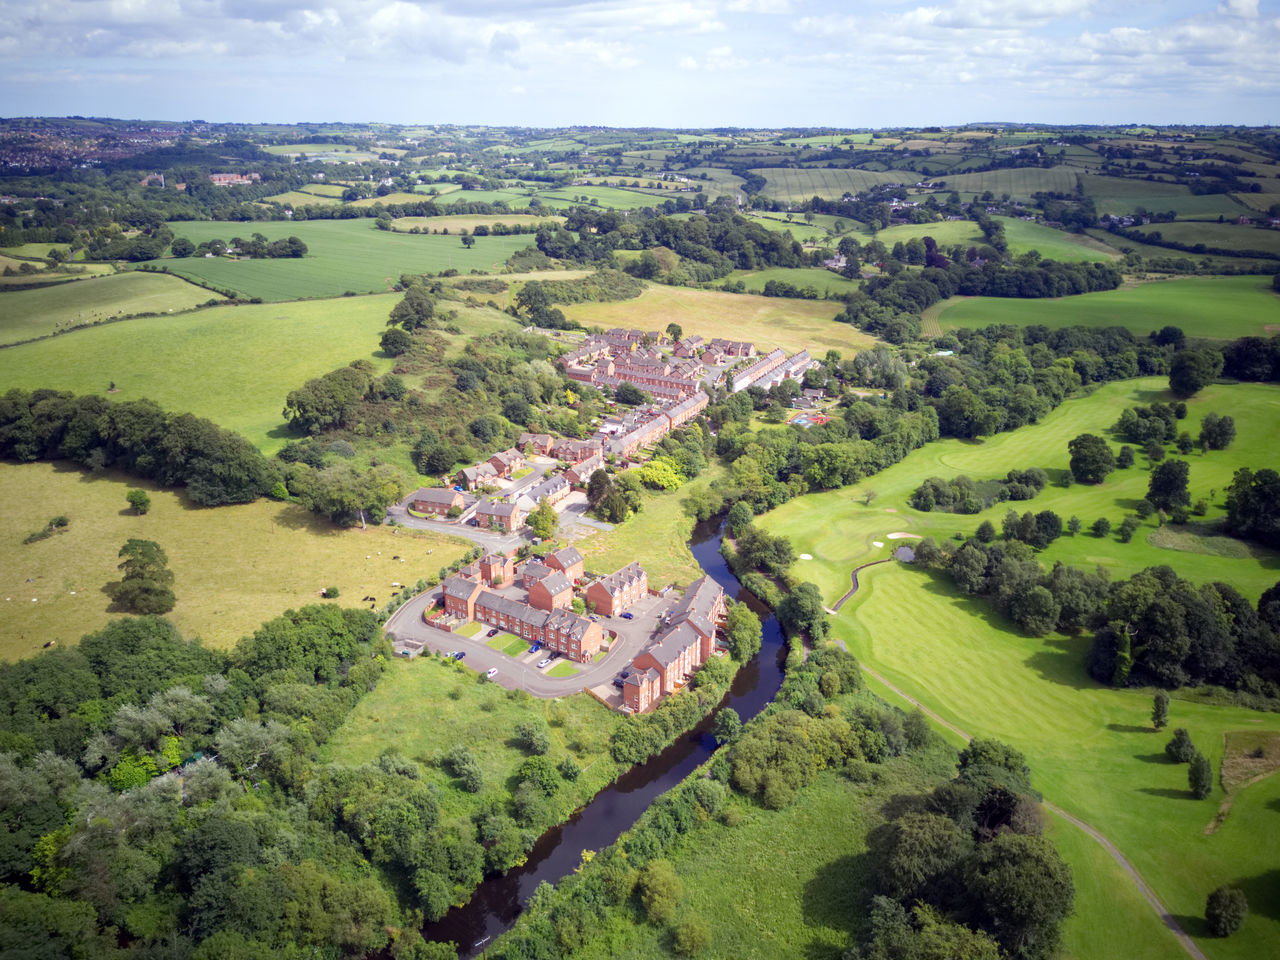 River Lagan Aerial View Agriculture Beauty In Nature Day Edenderry Field Giant's Ring Green Color High Angle View Lagan Landscape Nature No People Outdoors Patchwork Landscape Rural Scene Scenics Sky Tranquil Scene Tranquility Tree